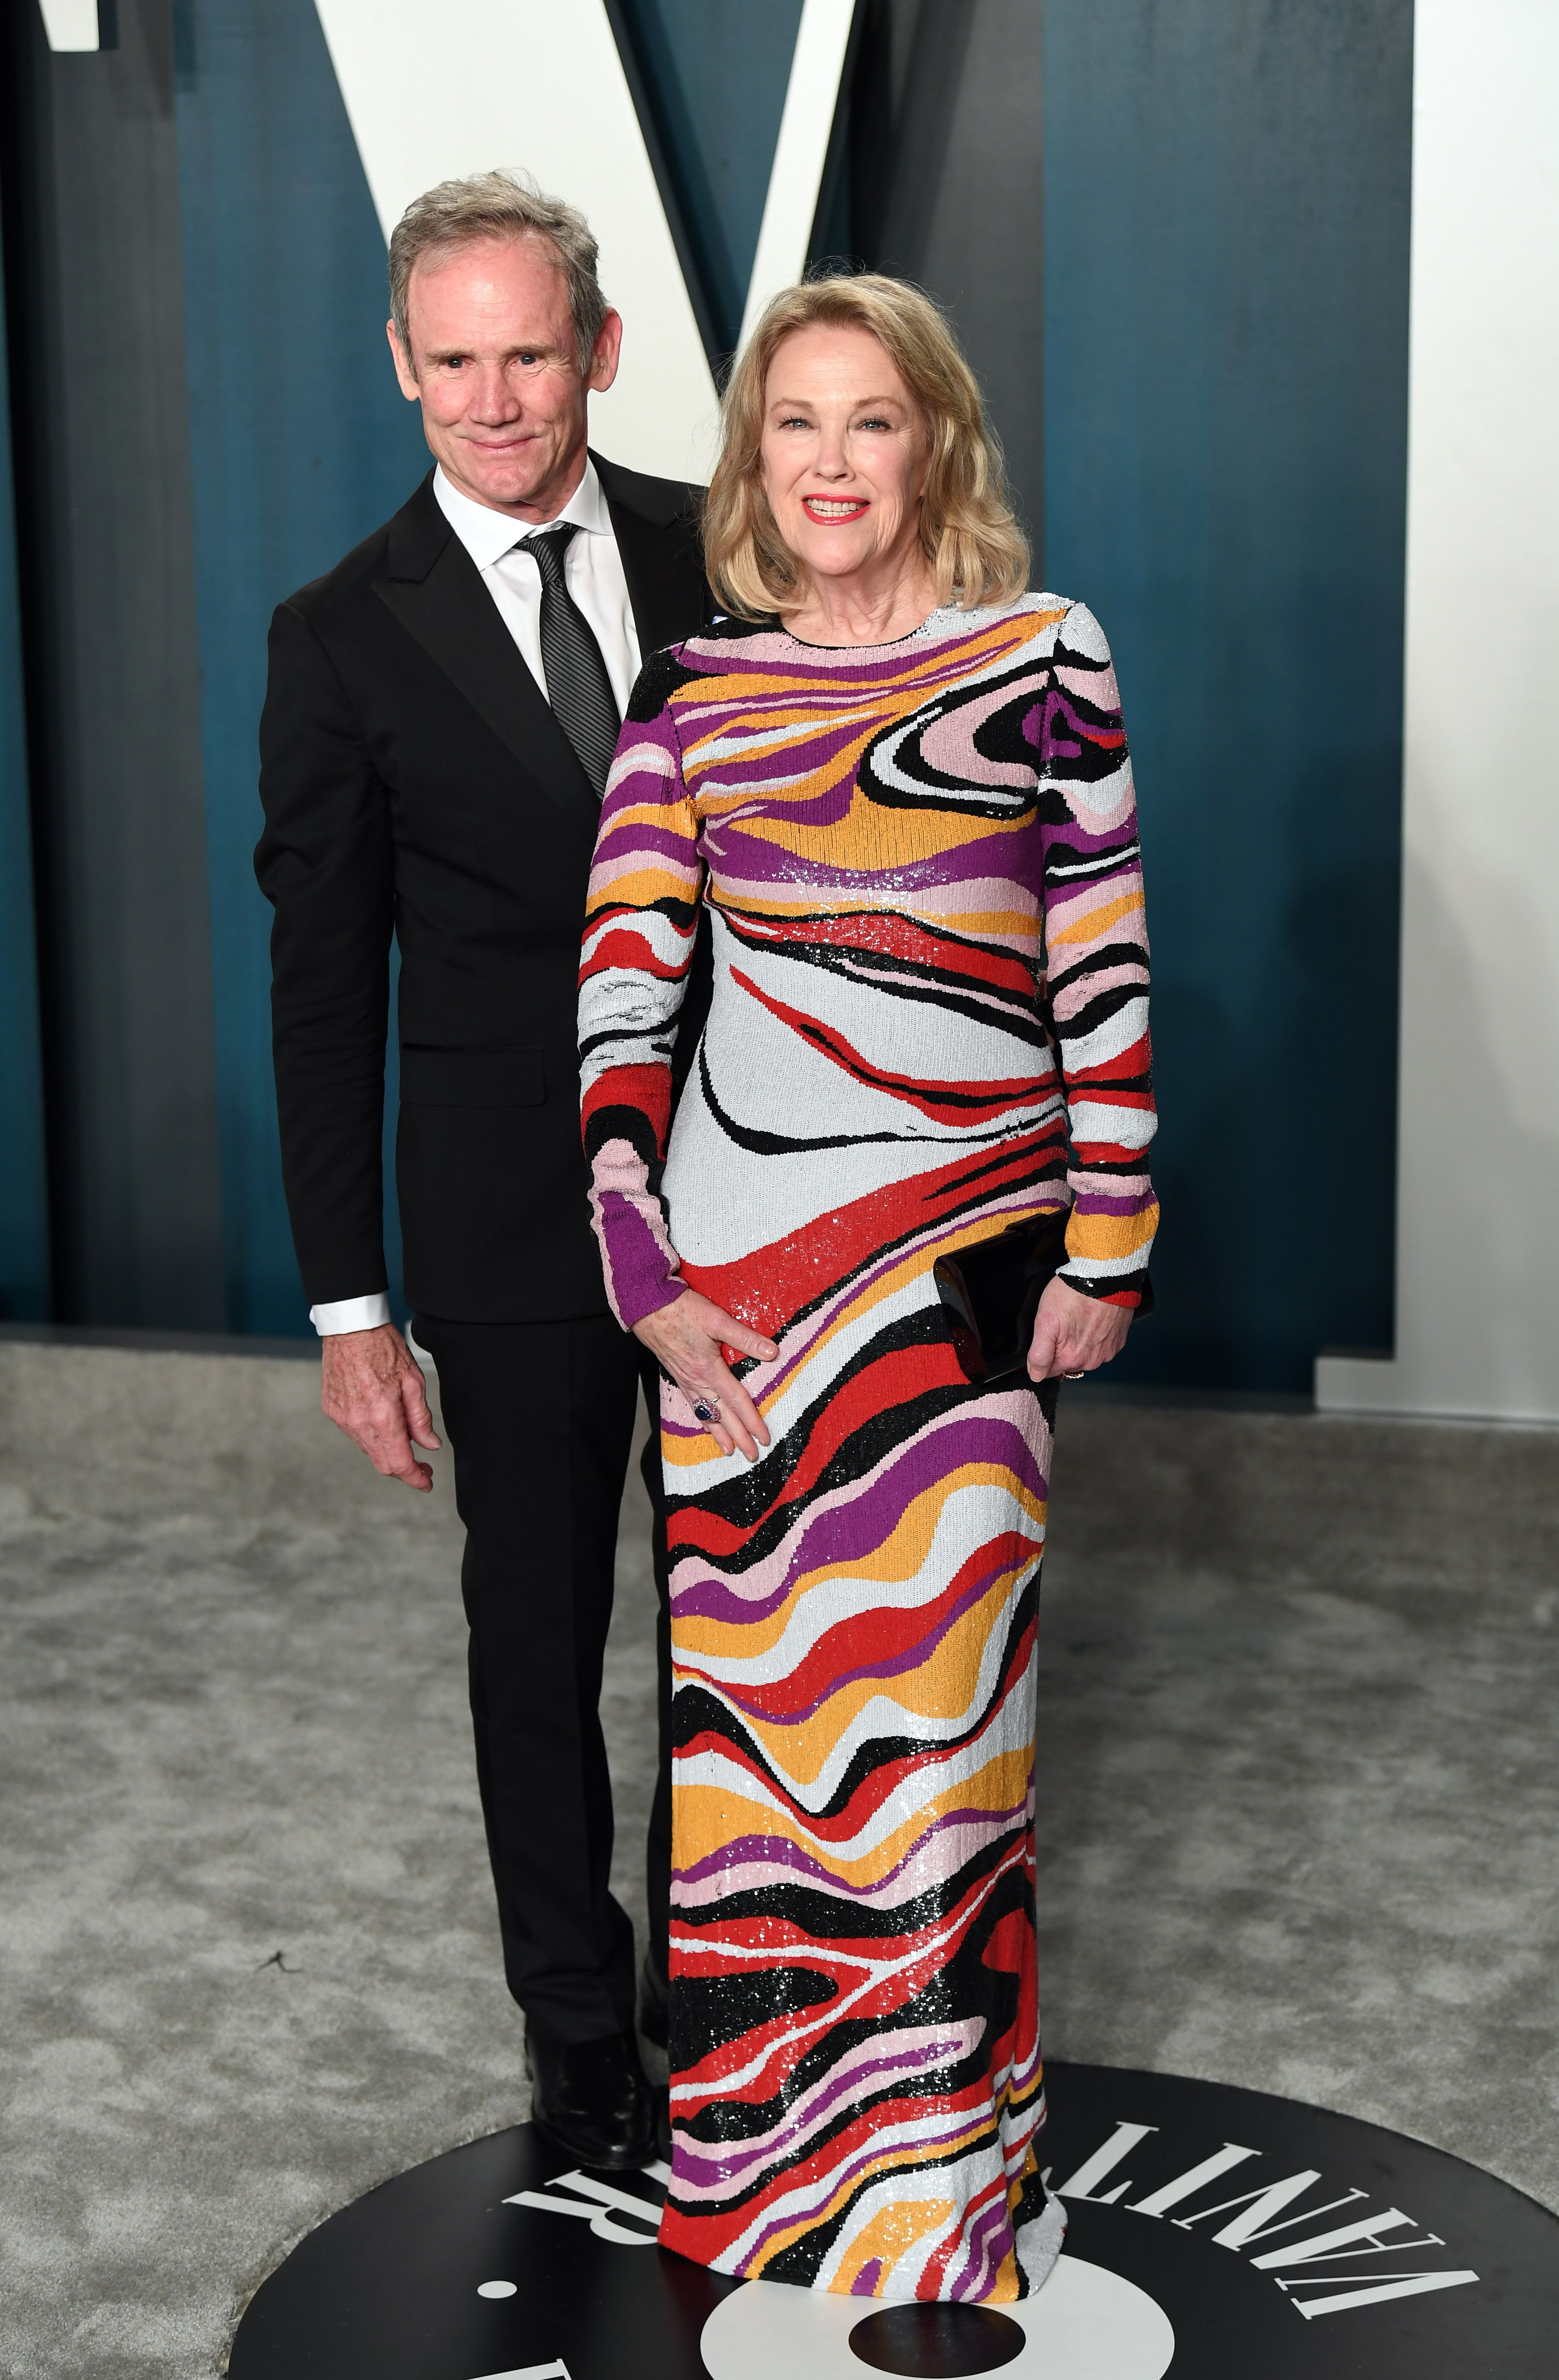 Bo Welch and Catherine O'Hara at the 2020 Vanity Fair Oscar Party hosted by Radhika Jones at Wallis Annenberg Center for the Performing Arts on February 09, 2020 | Photo: Getty Images